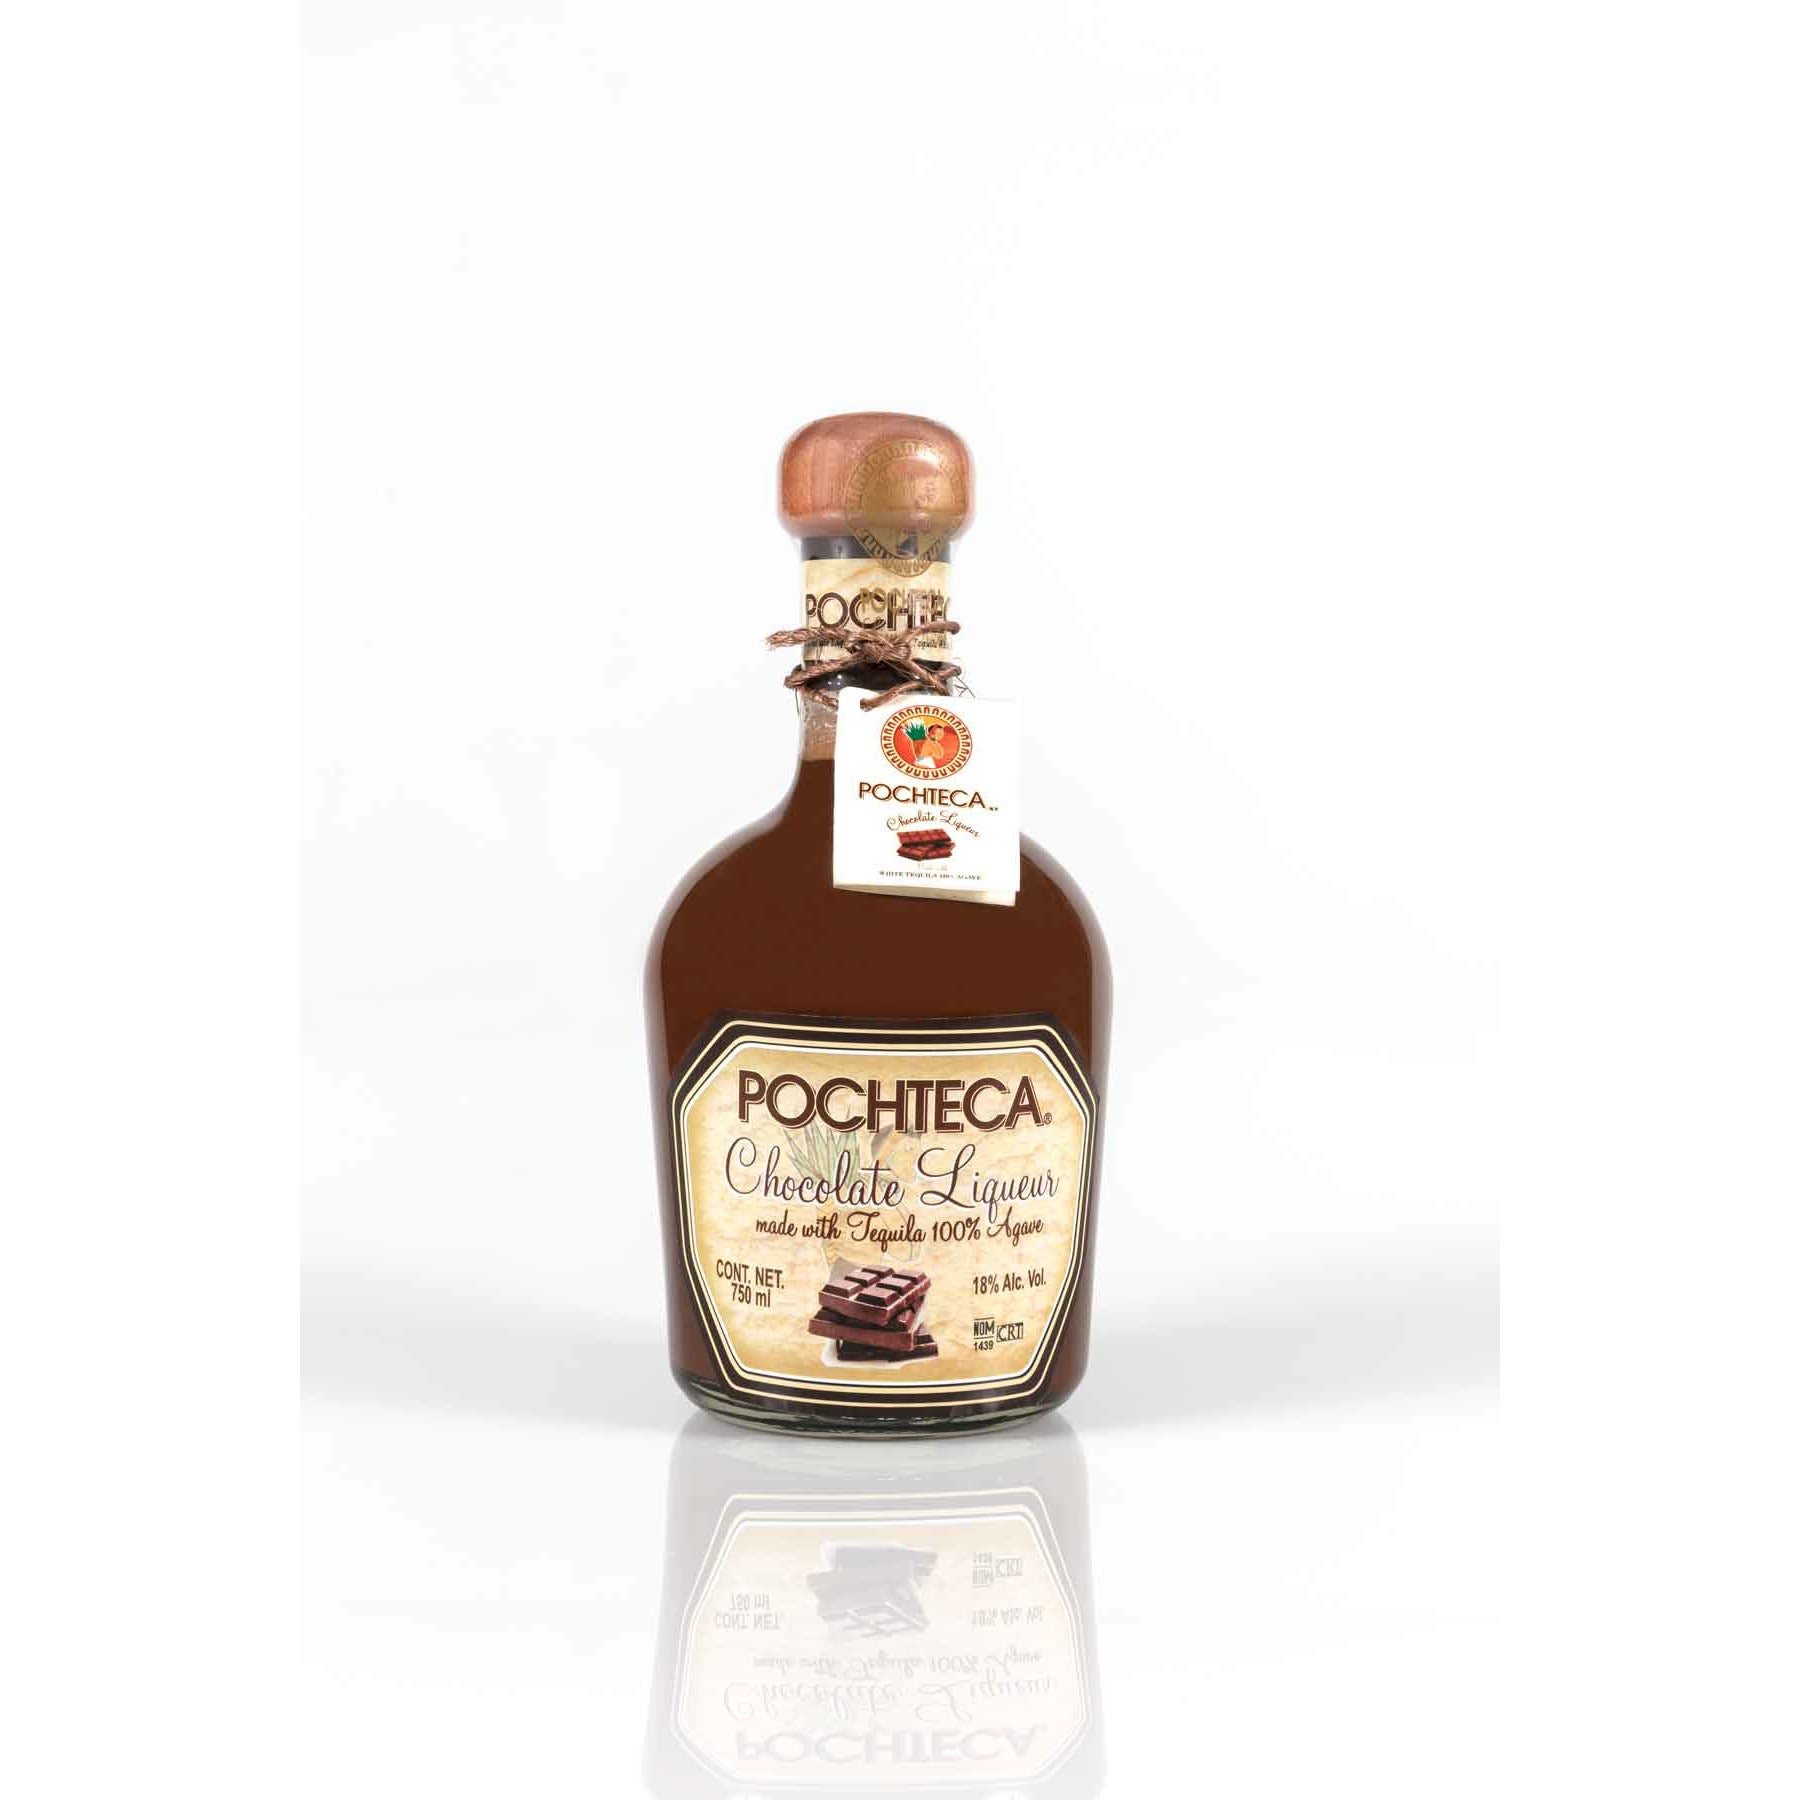 Pochteca Pomegranate Liqueur with Tequila (375 ML)